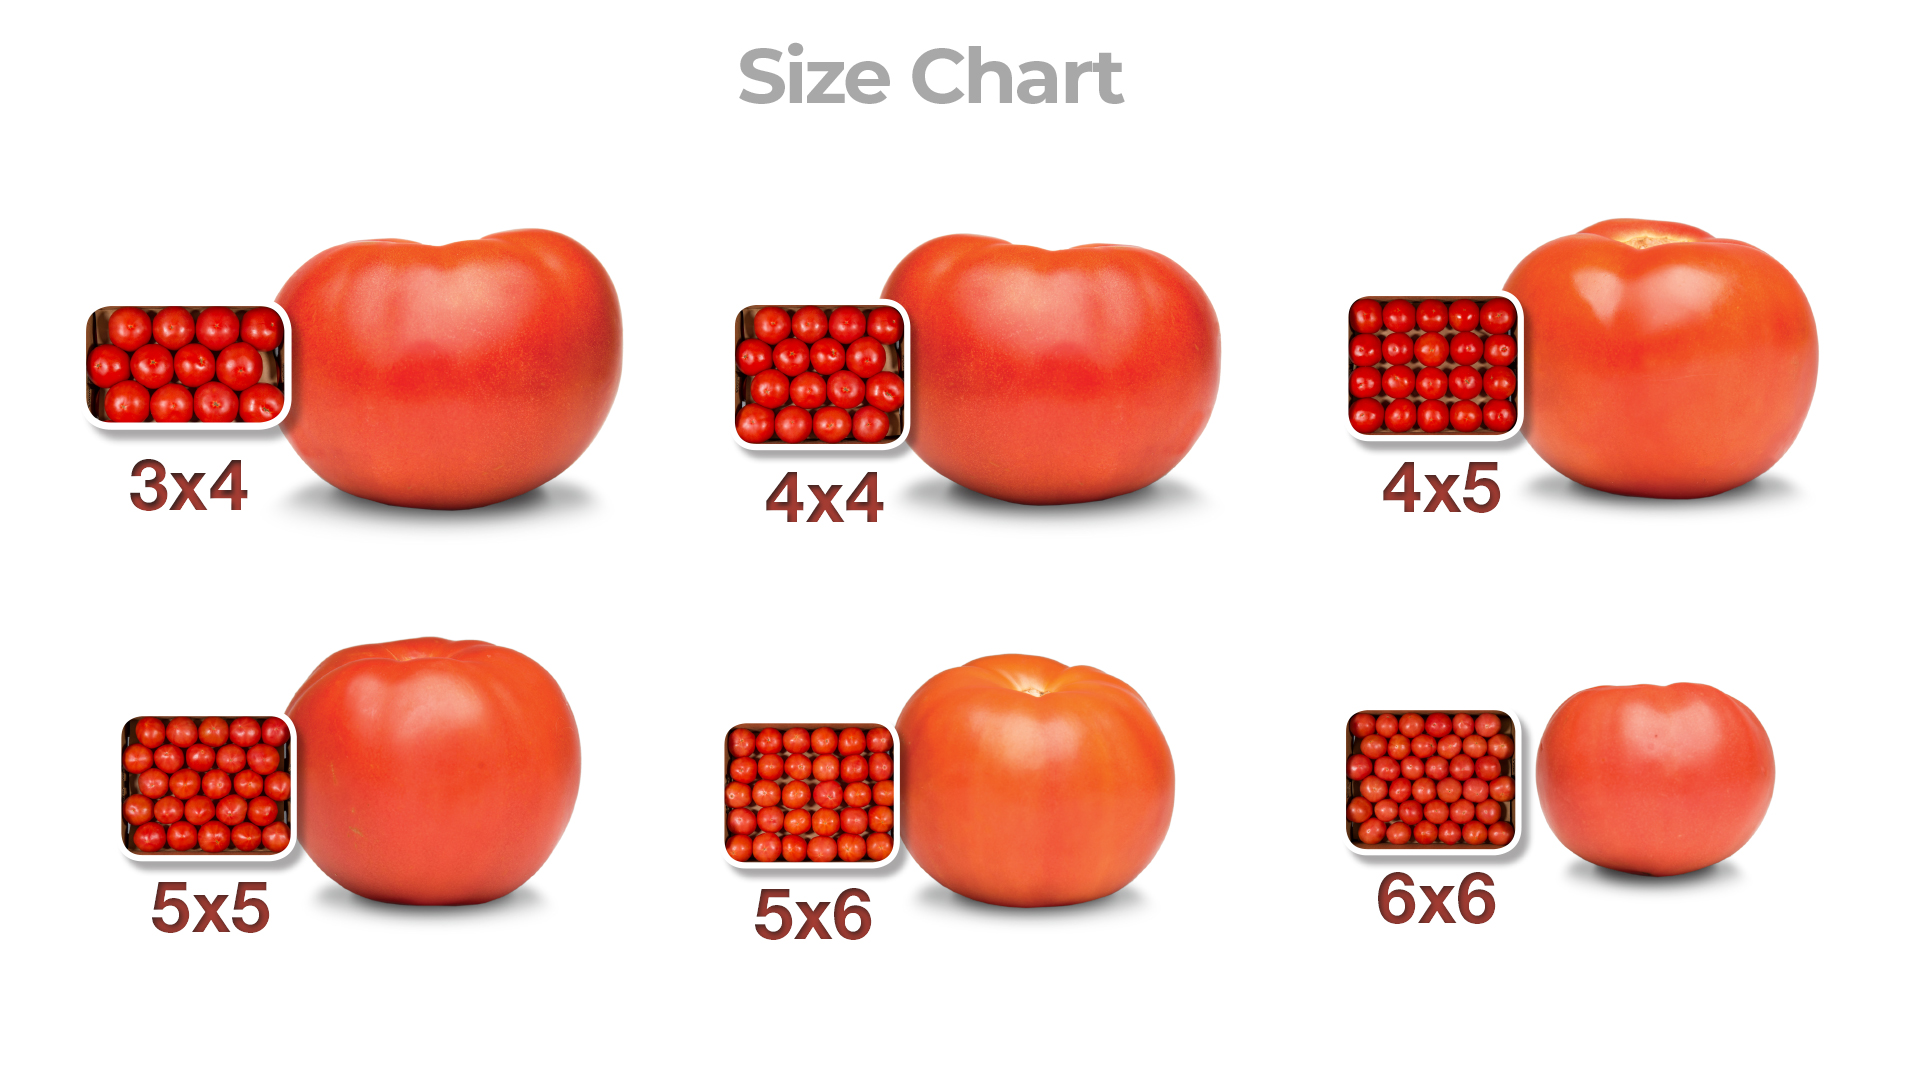 freshpoint produce 101 tomatoes size chart